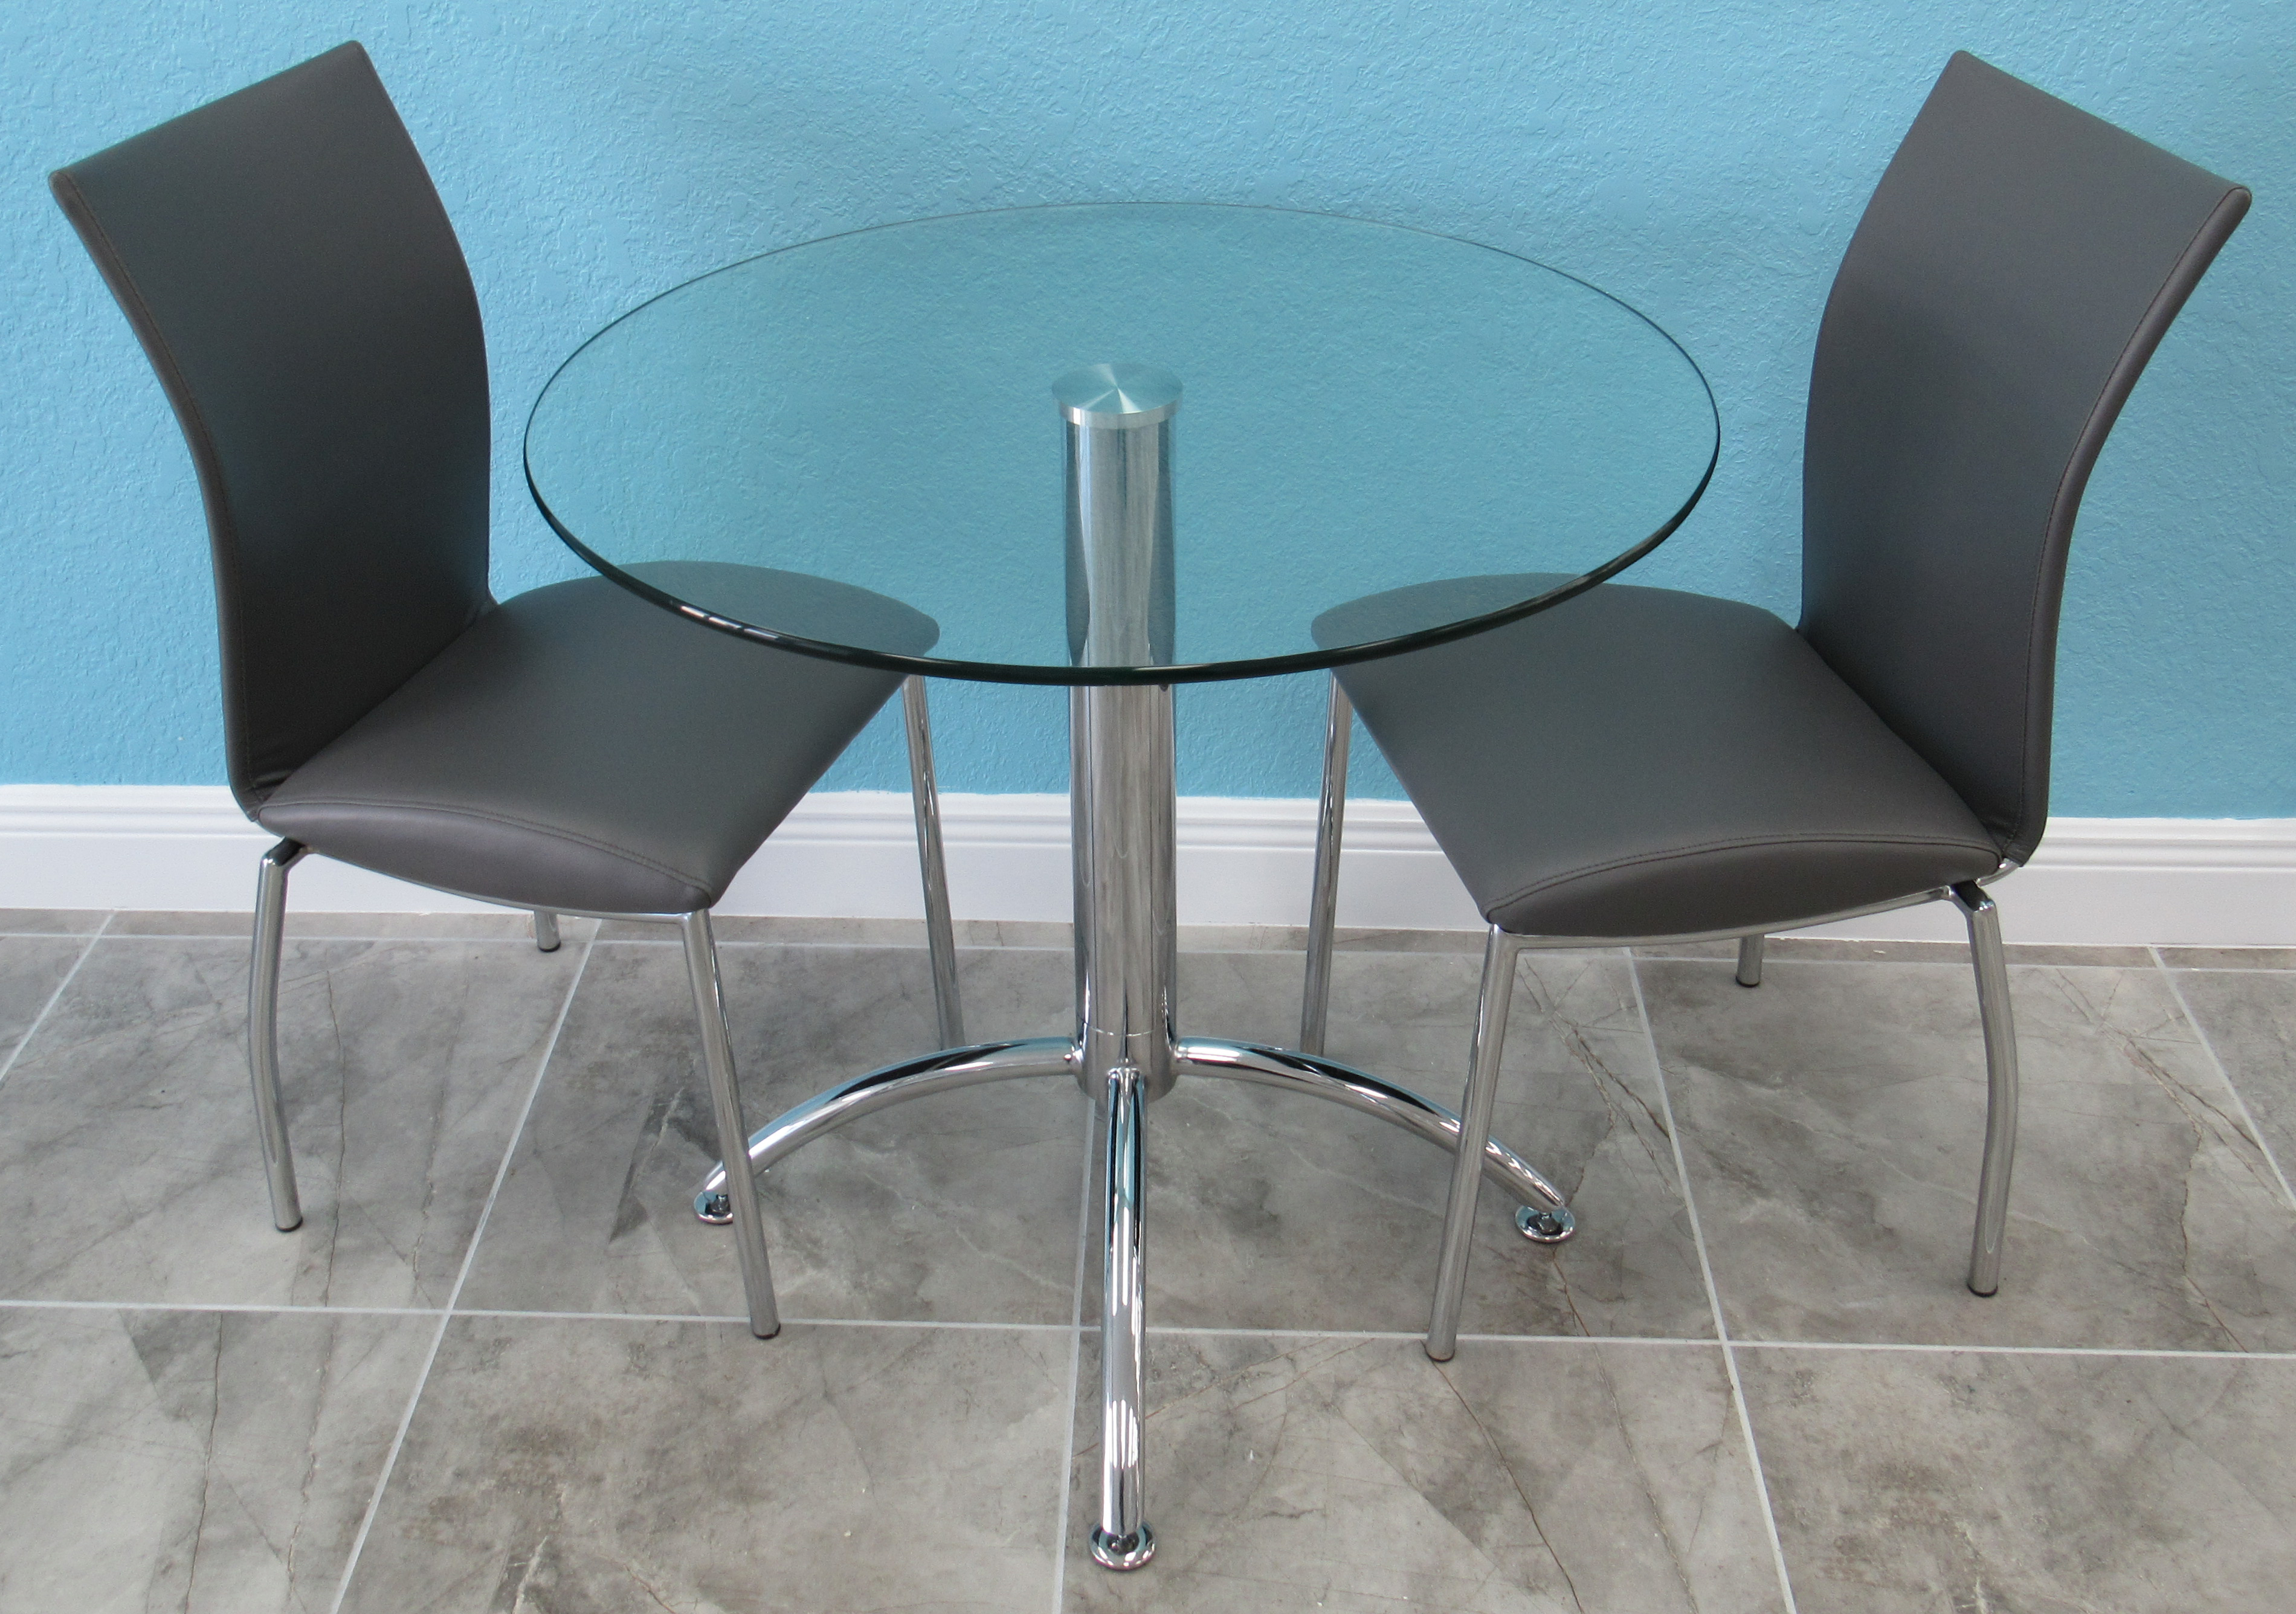 Small Glass 30 Inches Round Dinette Set With 2 Chairs